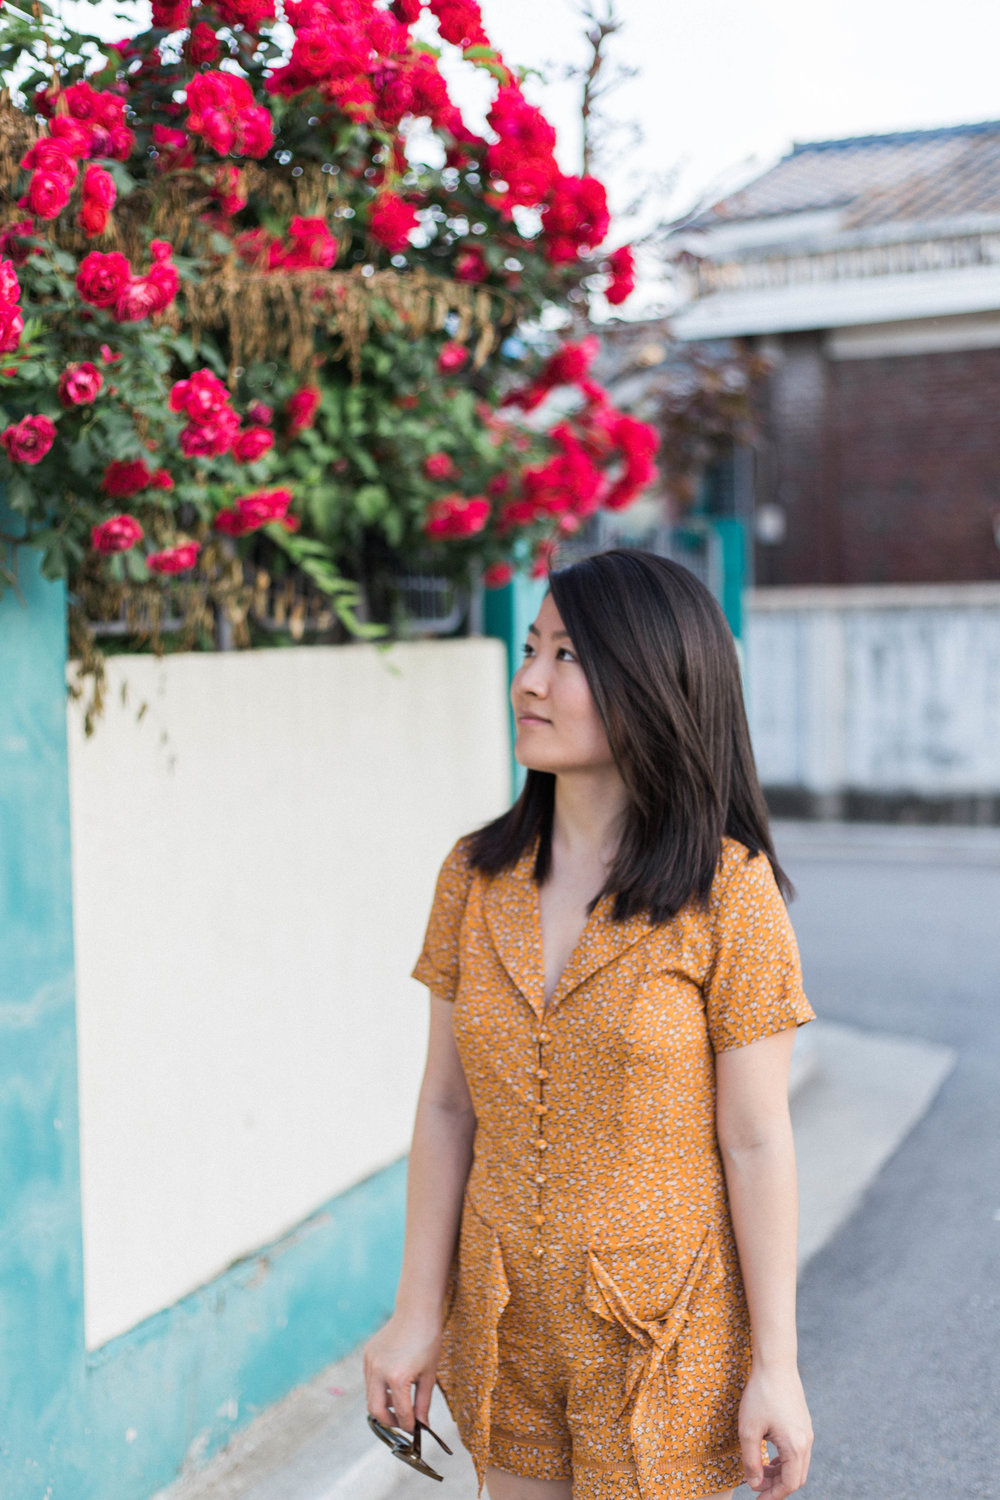 Summer Style | On the Street Where We Live (aretherelilactrees.com)